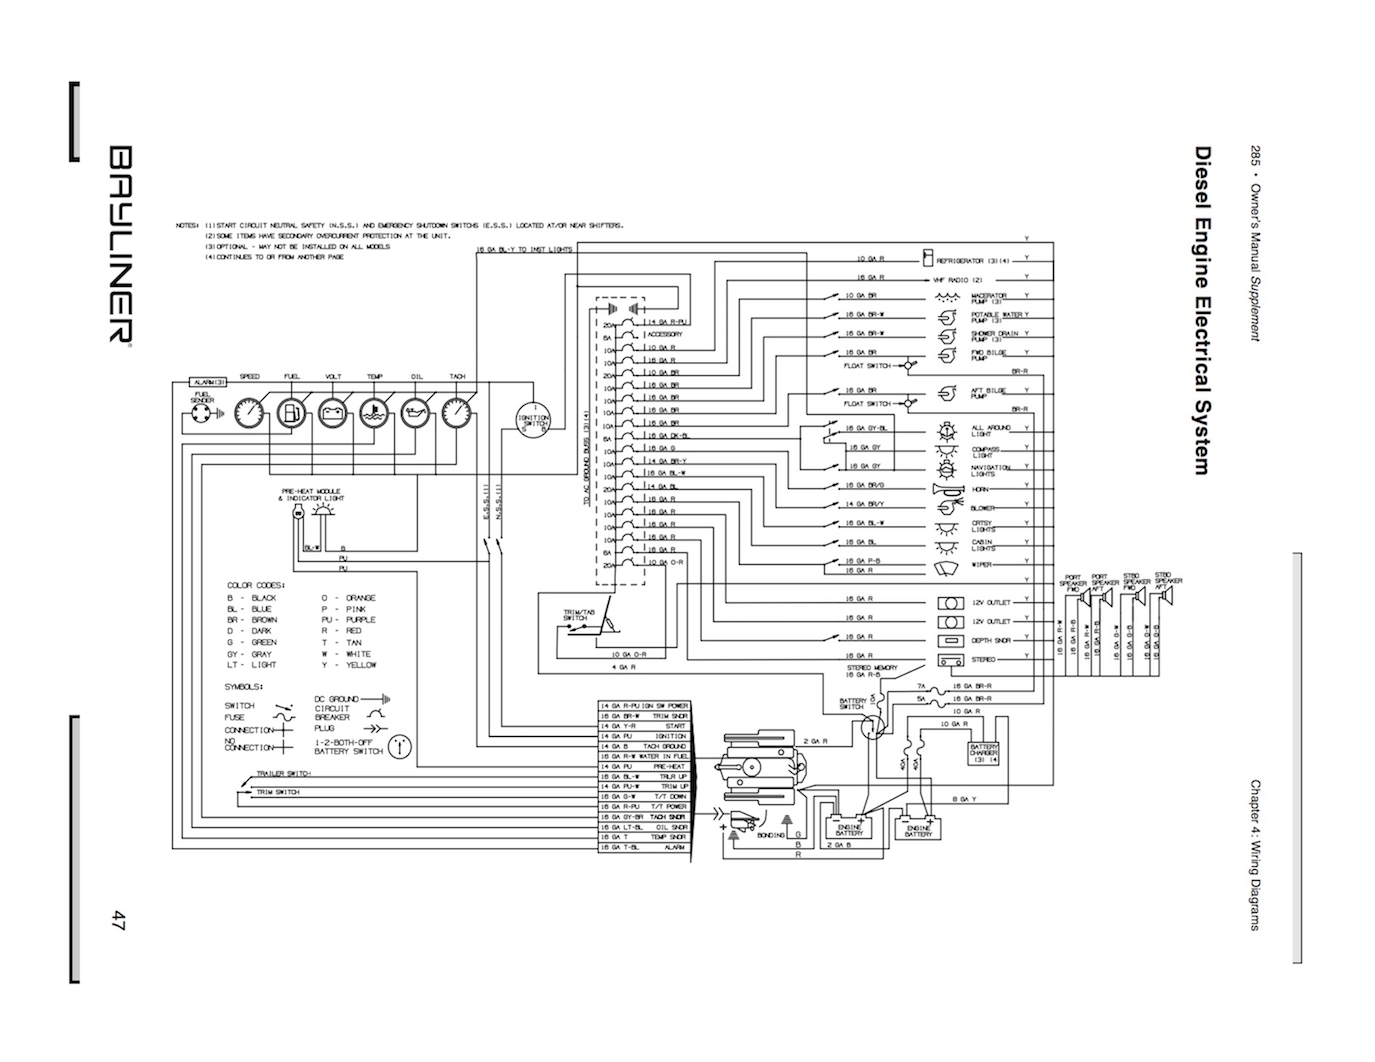 [DIAGRAM] Wiring Model Trane Diagram Ab0150a FULL Version